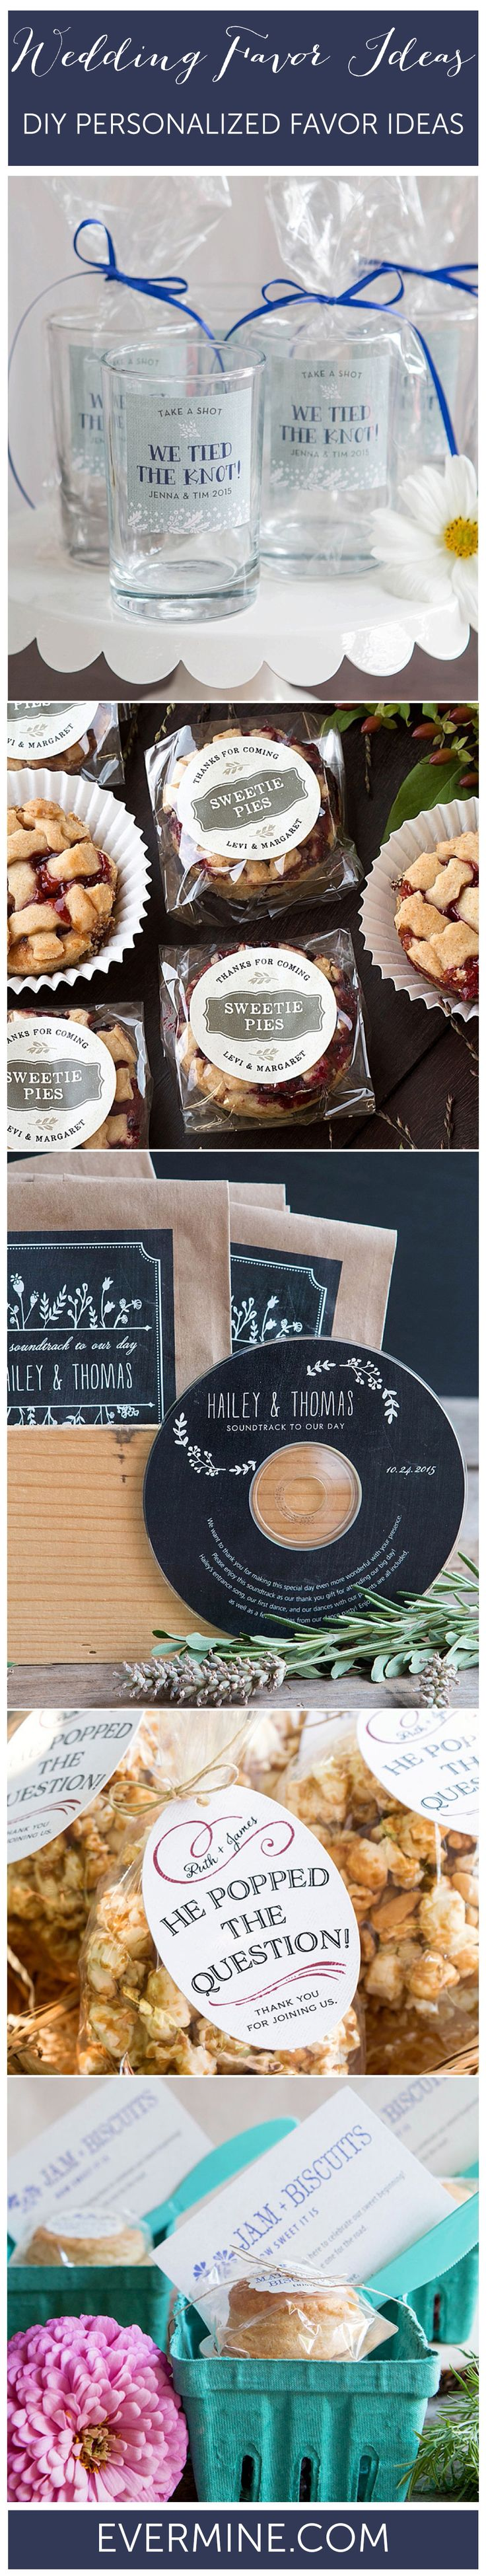 17 Best Ideas About Personalized Favors On Pinterest